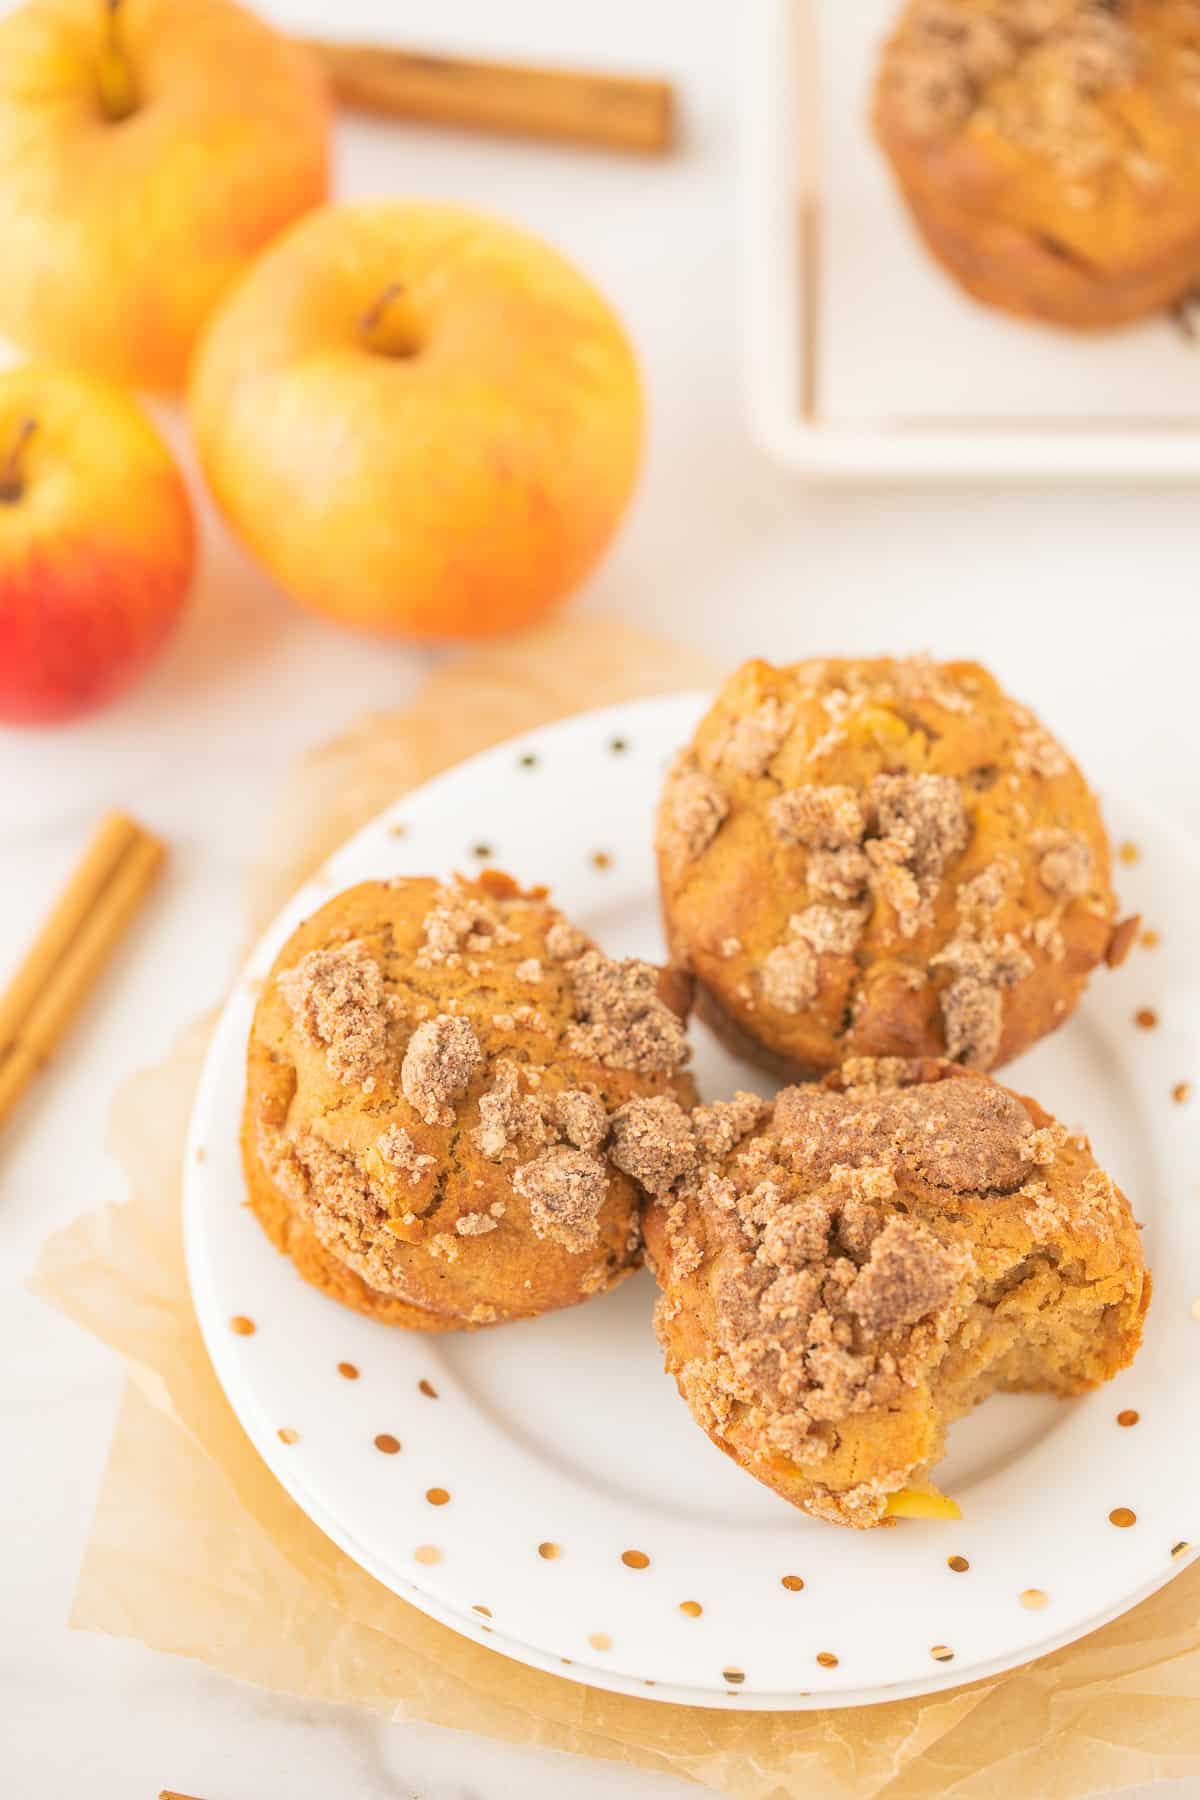 apple muffins on a plate with fresh apples and cinnamon sticks on a countertop